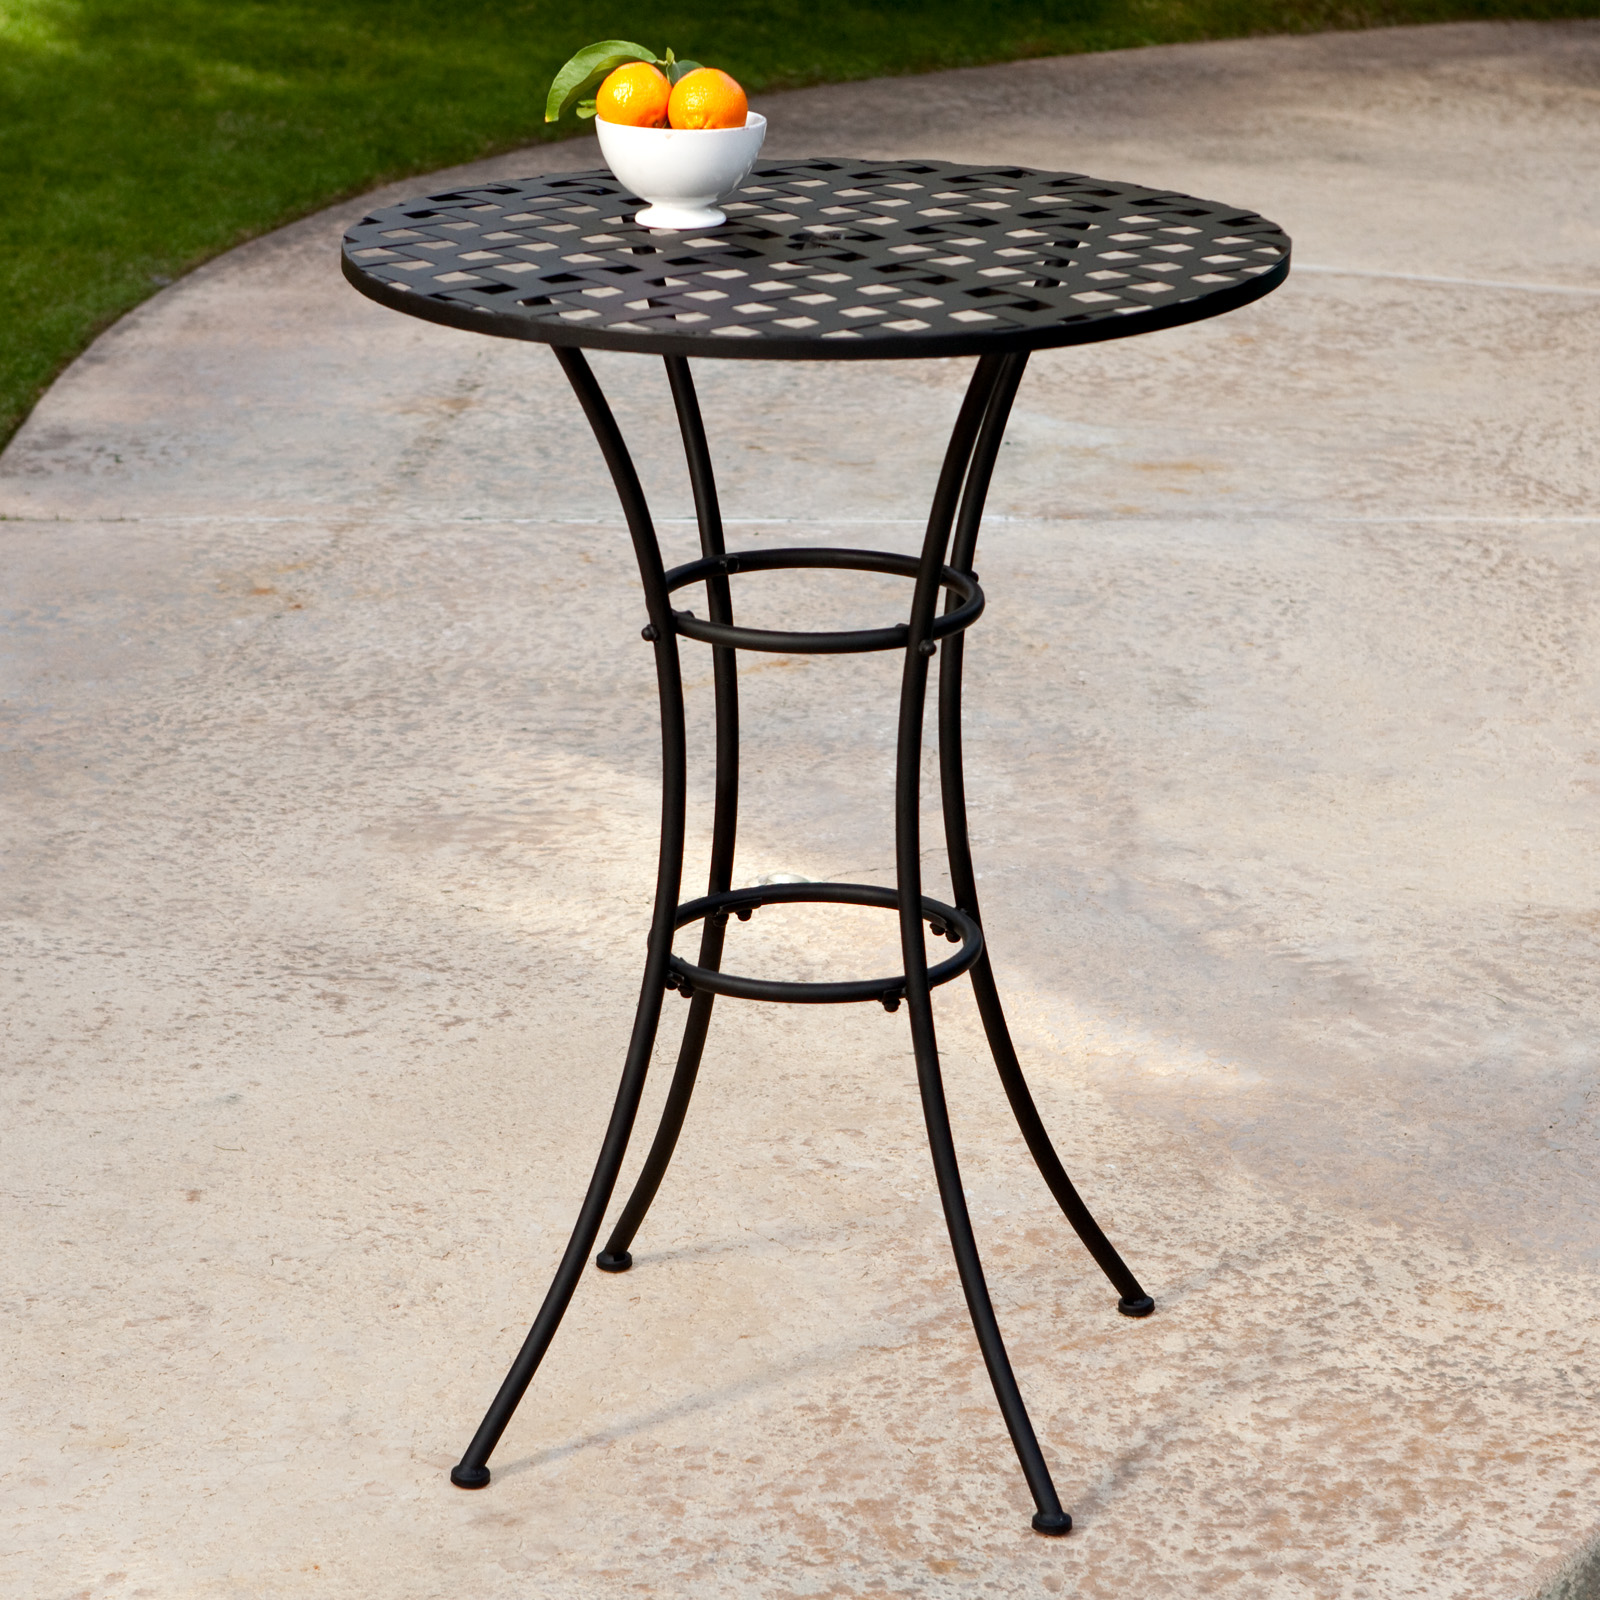 Belham Living Wrought Iron Bar Height Bistro Set By Woodard   Outdoor Bistro  Sets At Hayneedle